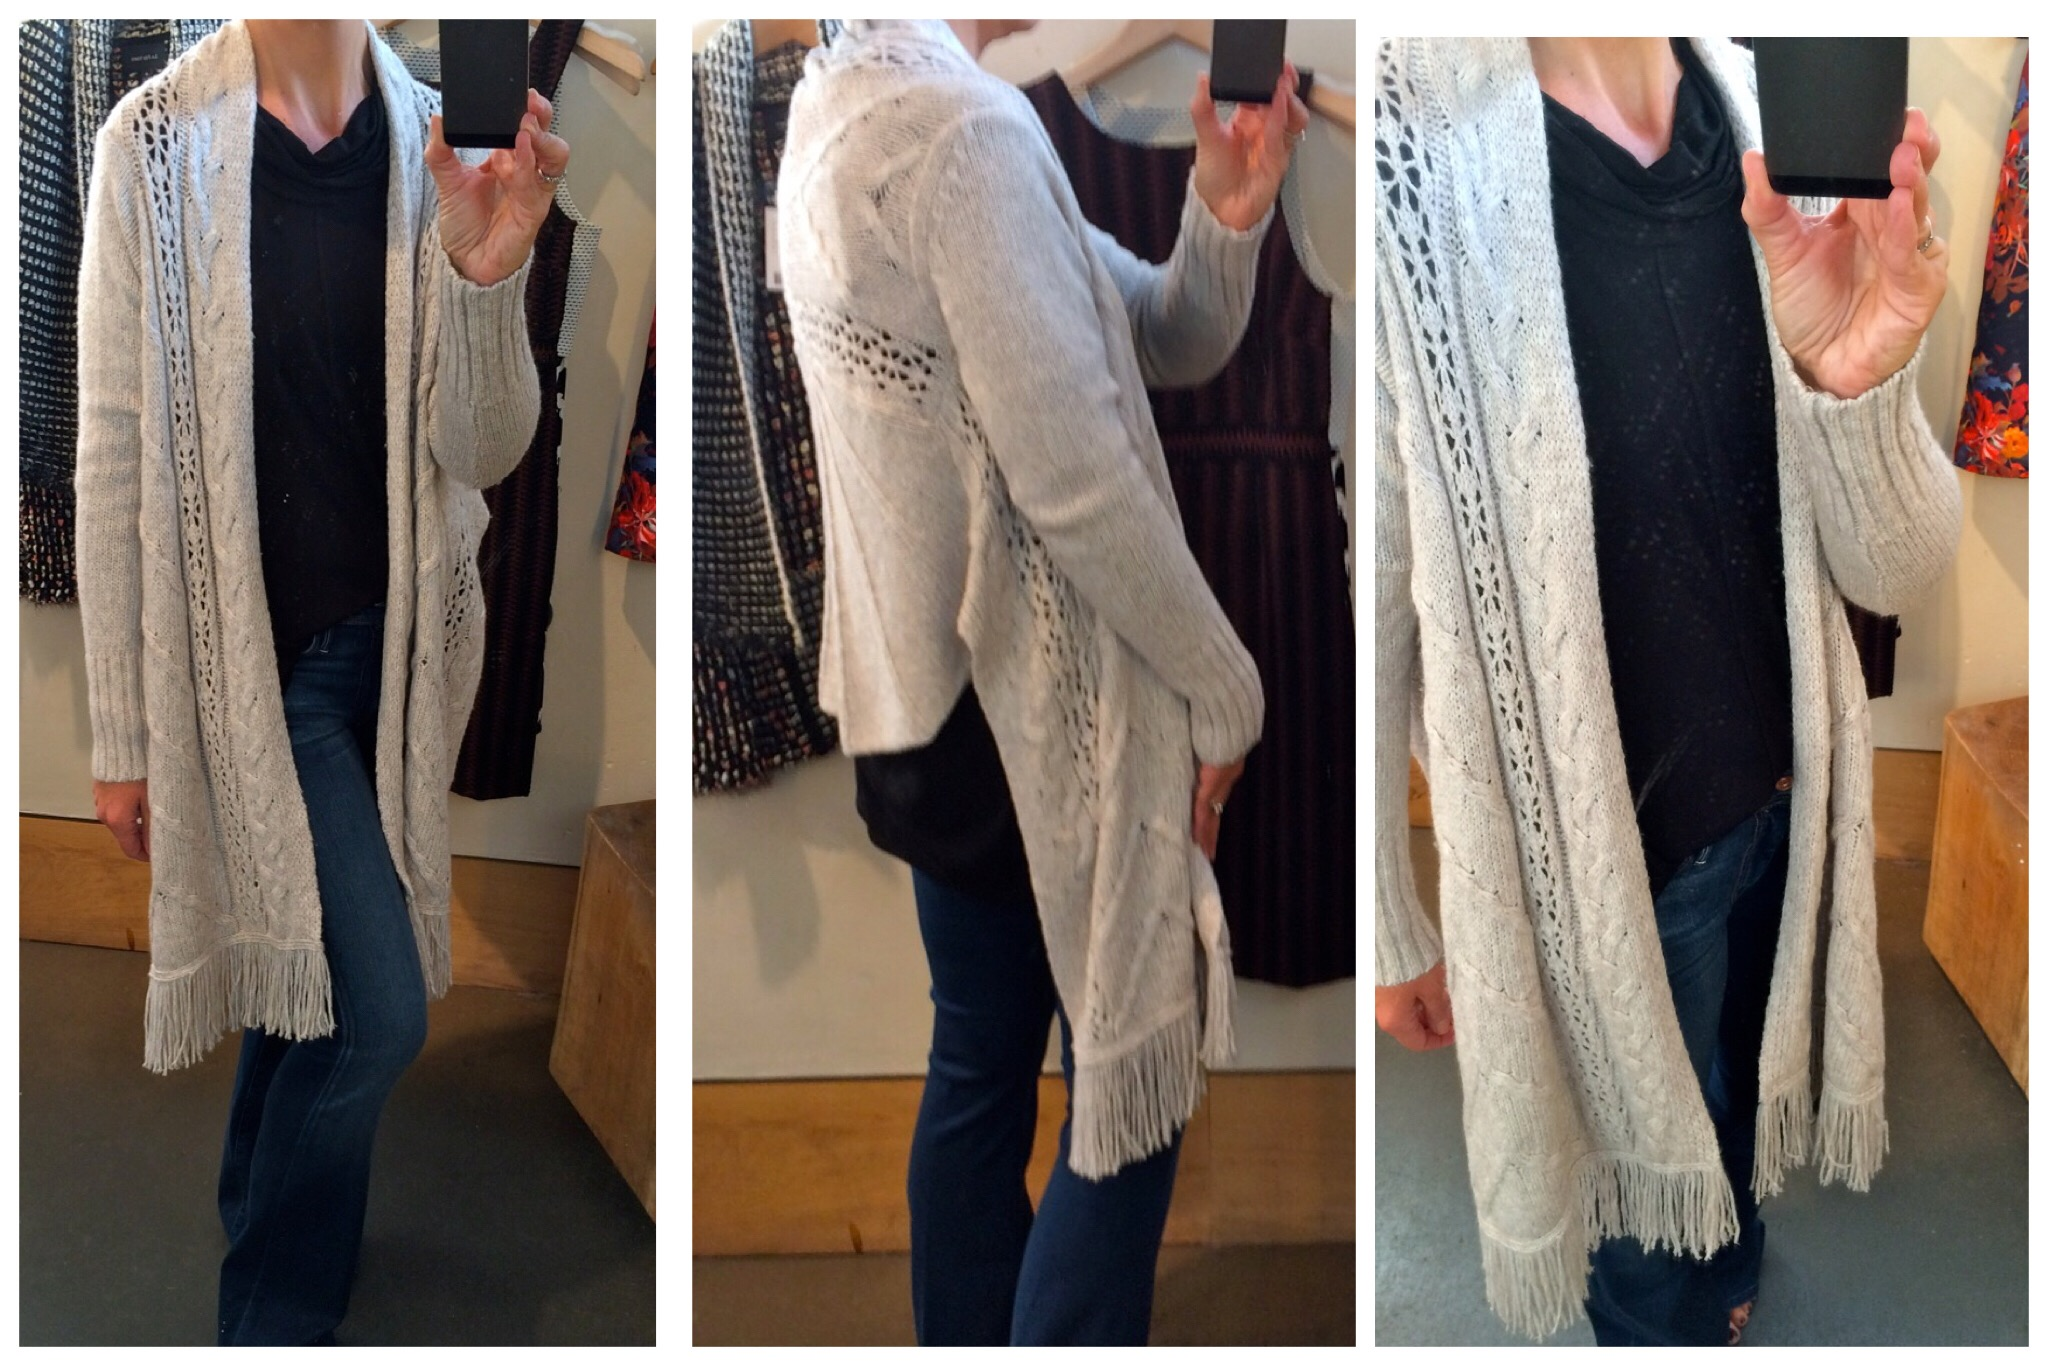 55b348fd6a5 Anthropologie Reviews + Fresh Cuts! - Ask Suzanne Bell